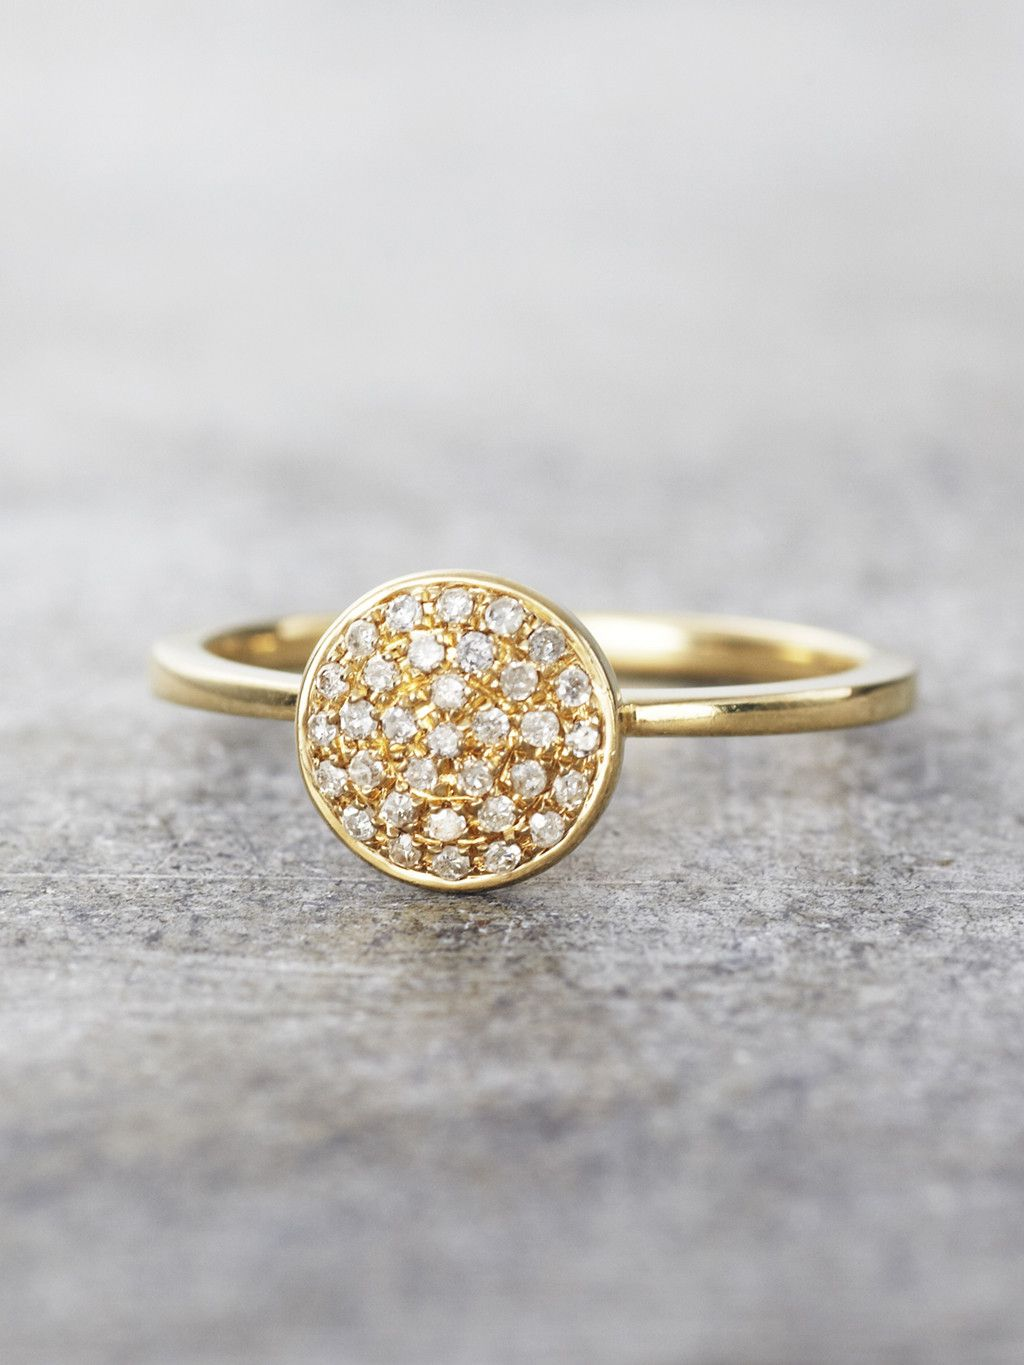 Detailed With 33 Sparkling Pave Set Diamonds This Shining 14k Gold Disk Is Upon A Matching Band To Create Ring That An Instant Clic